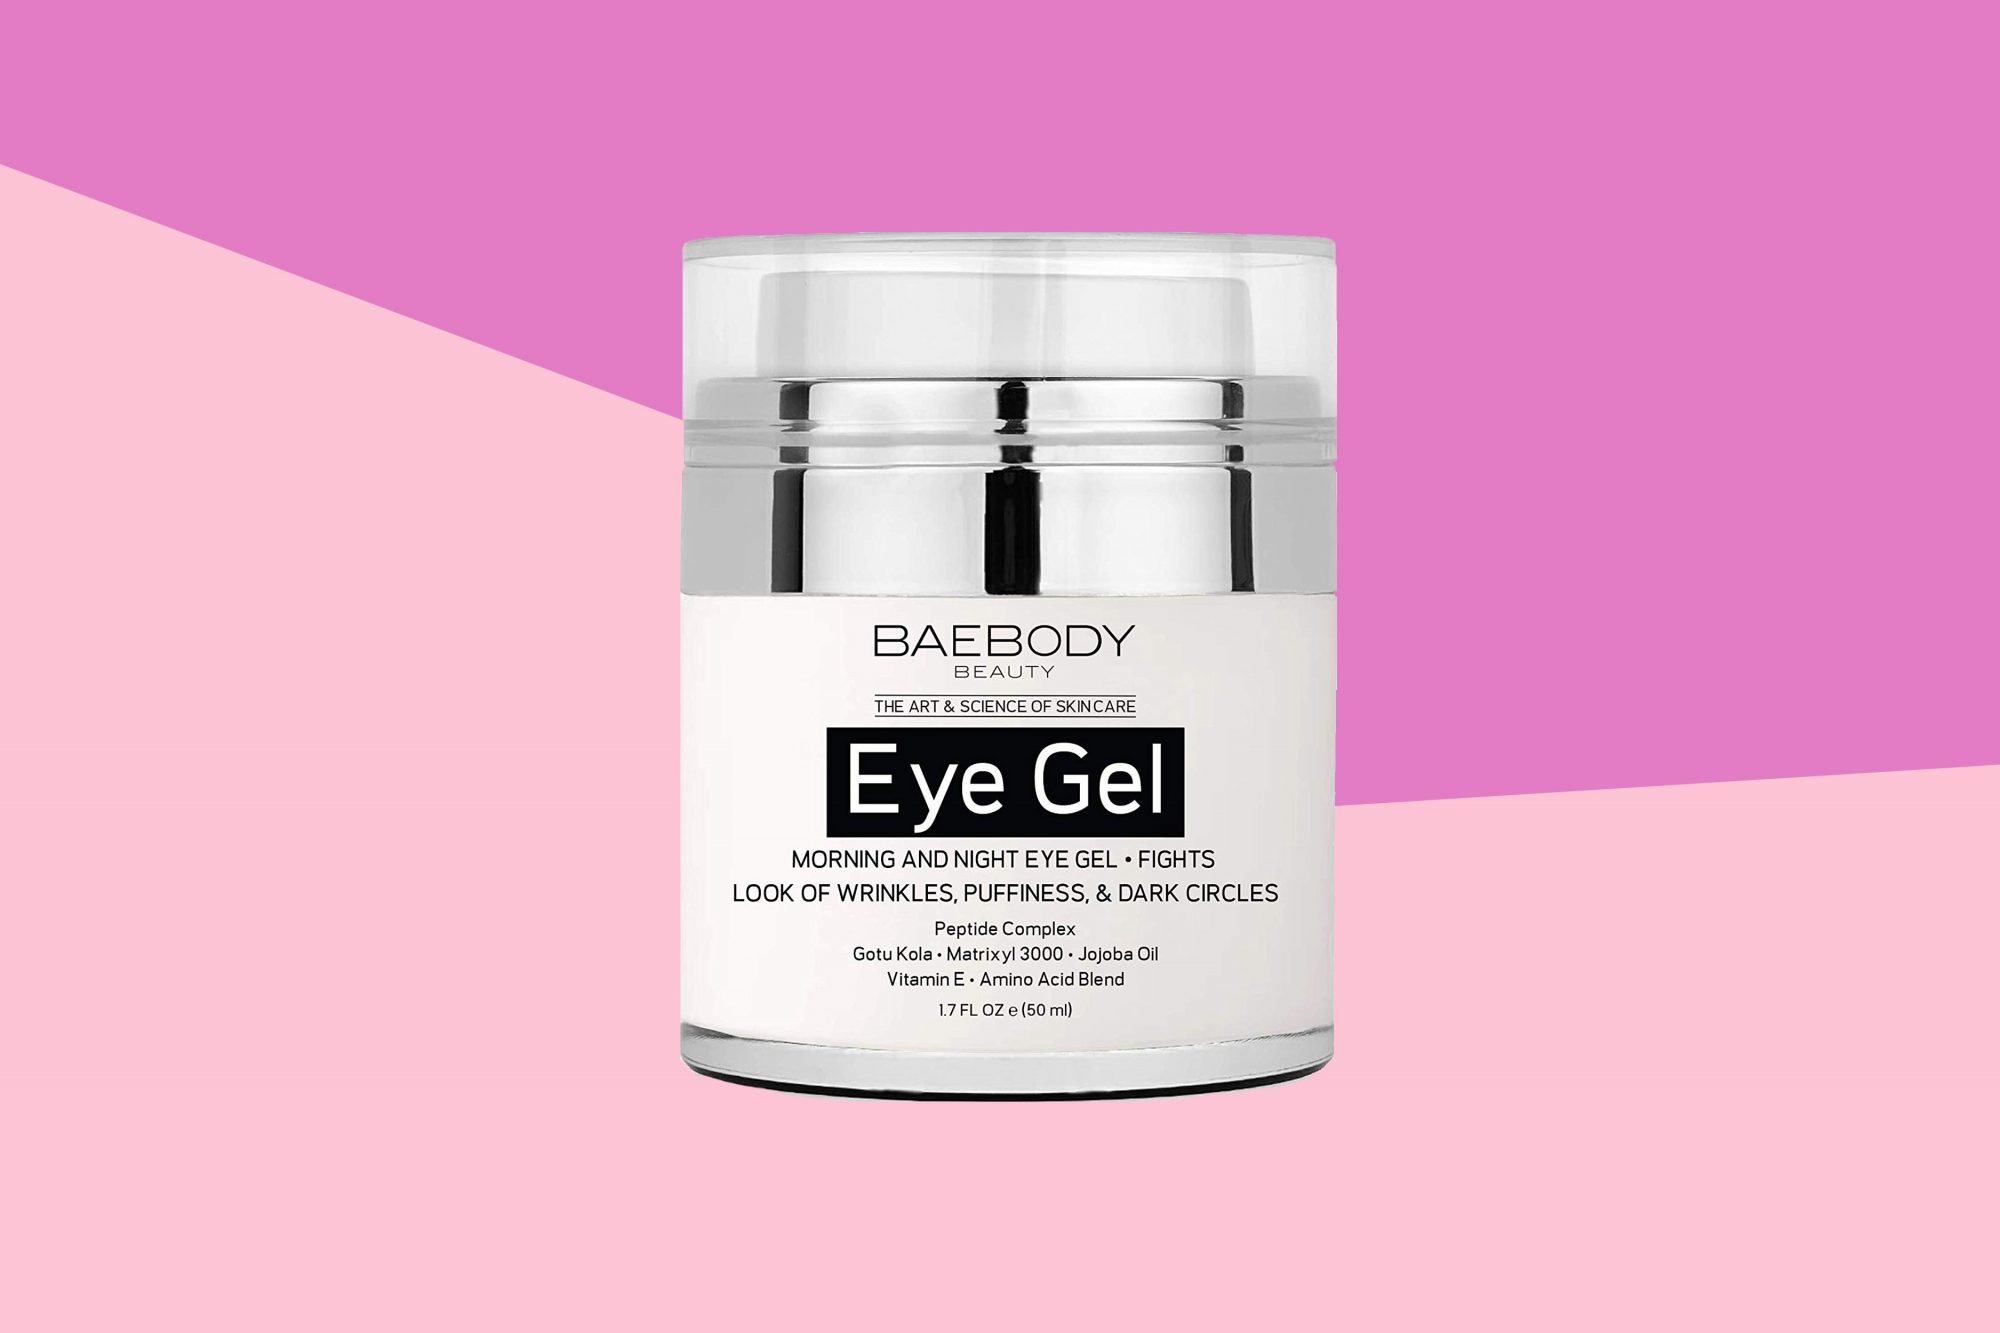 d8acec0cda8 Amazon's 15 Best Beauty Products Are All Under $60   Real Simple